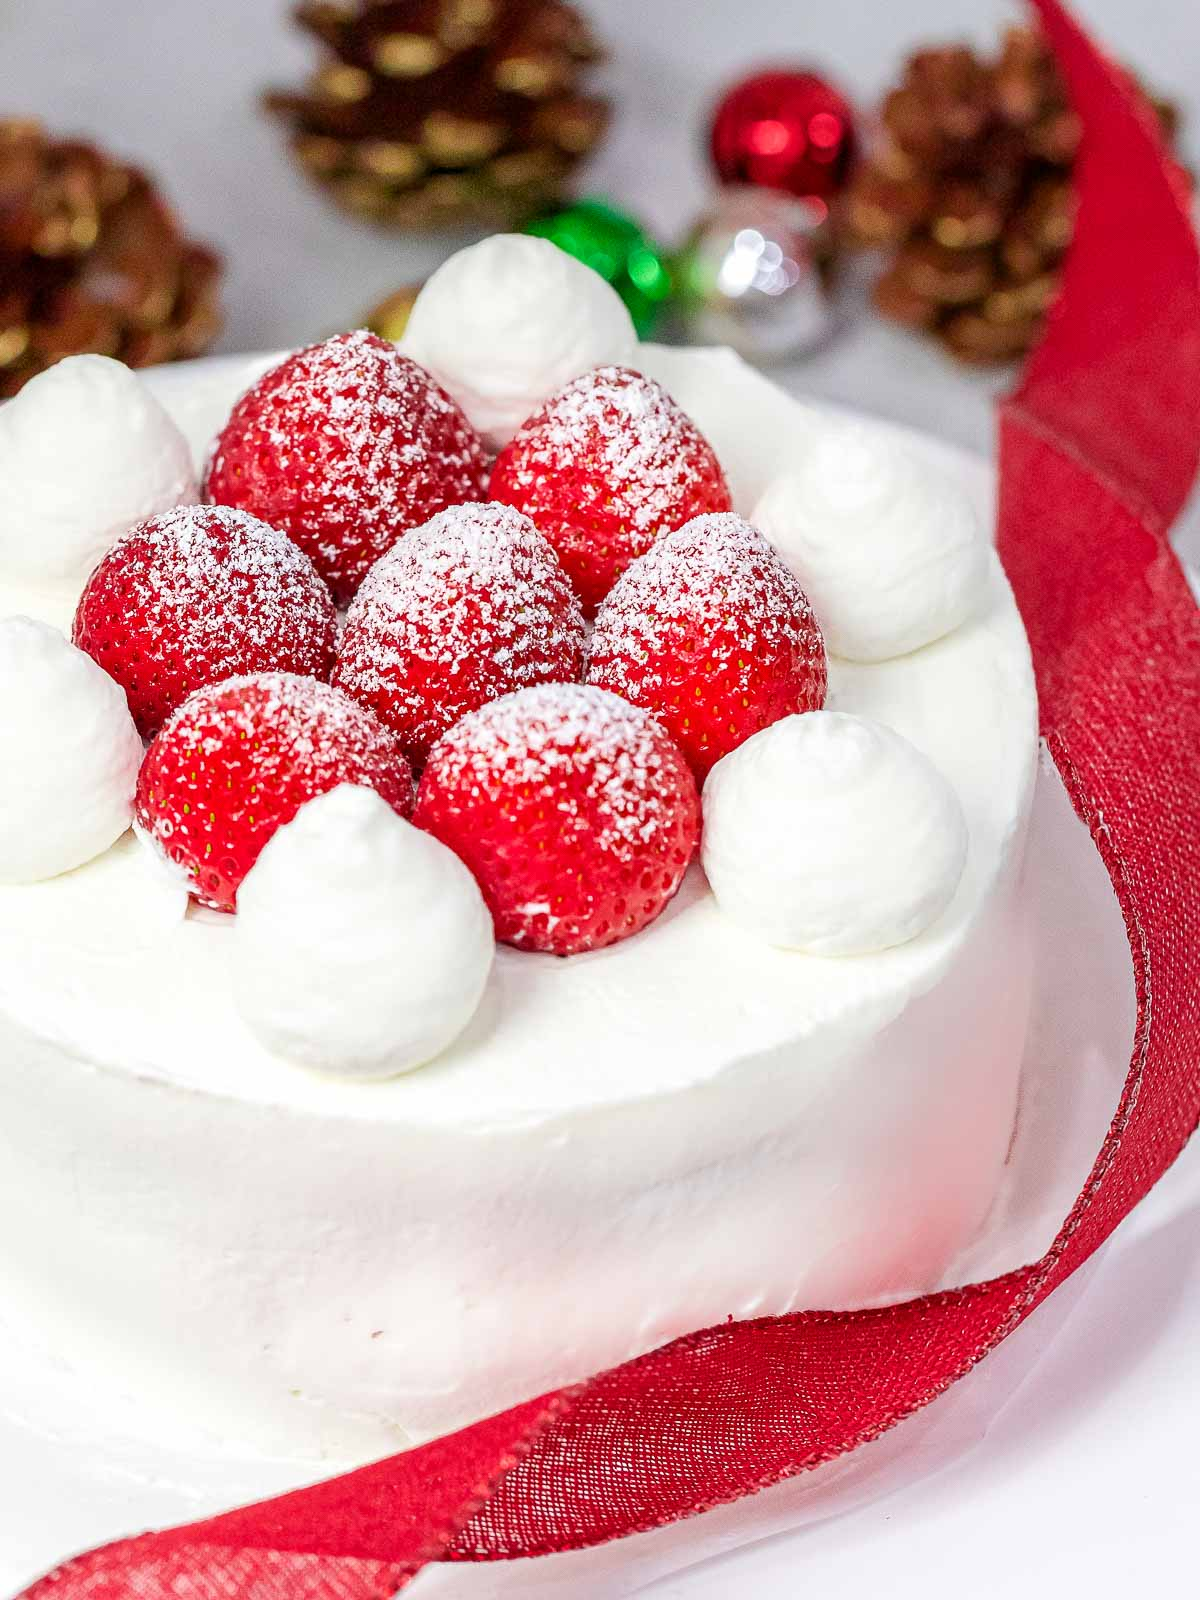 Japanese Christmas cake decorated with fresh strawberries and whipped cream next to red ribbon, Christmas ornaments, and pine cones in the background